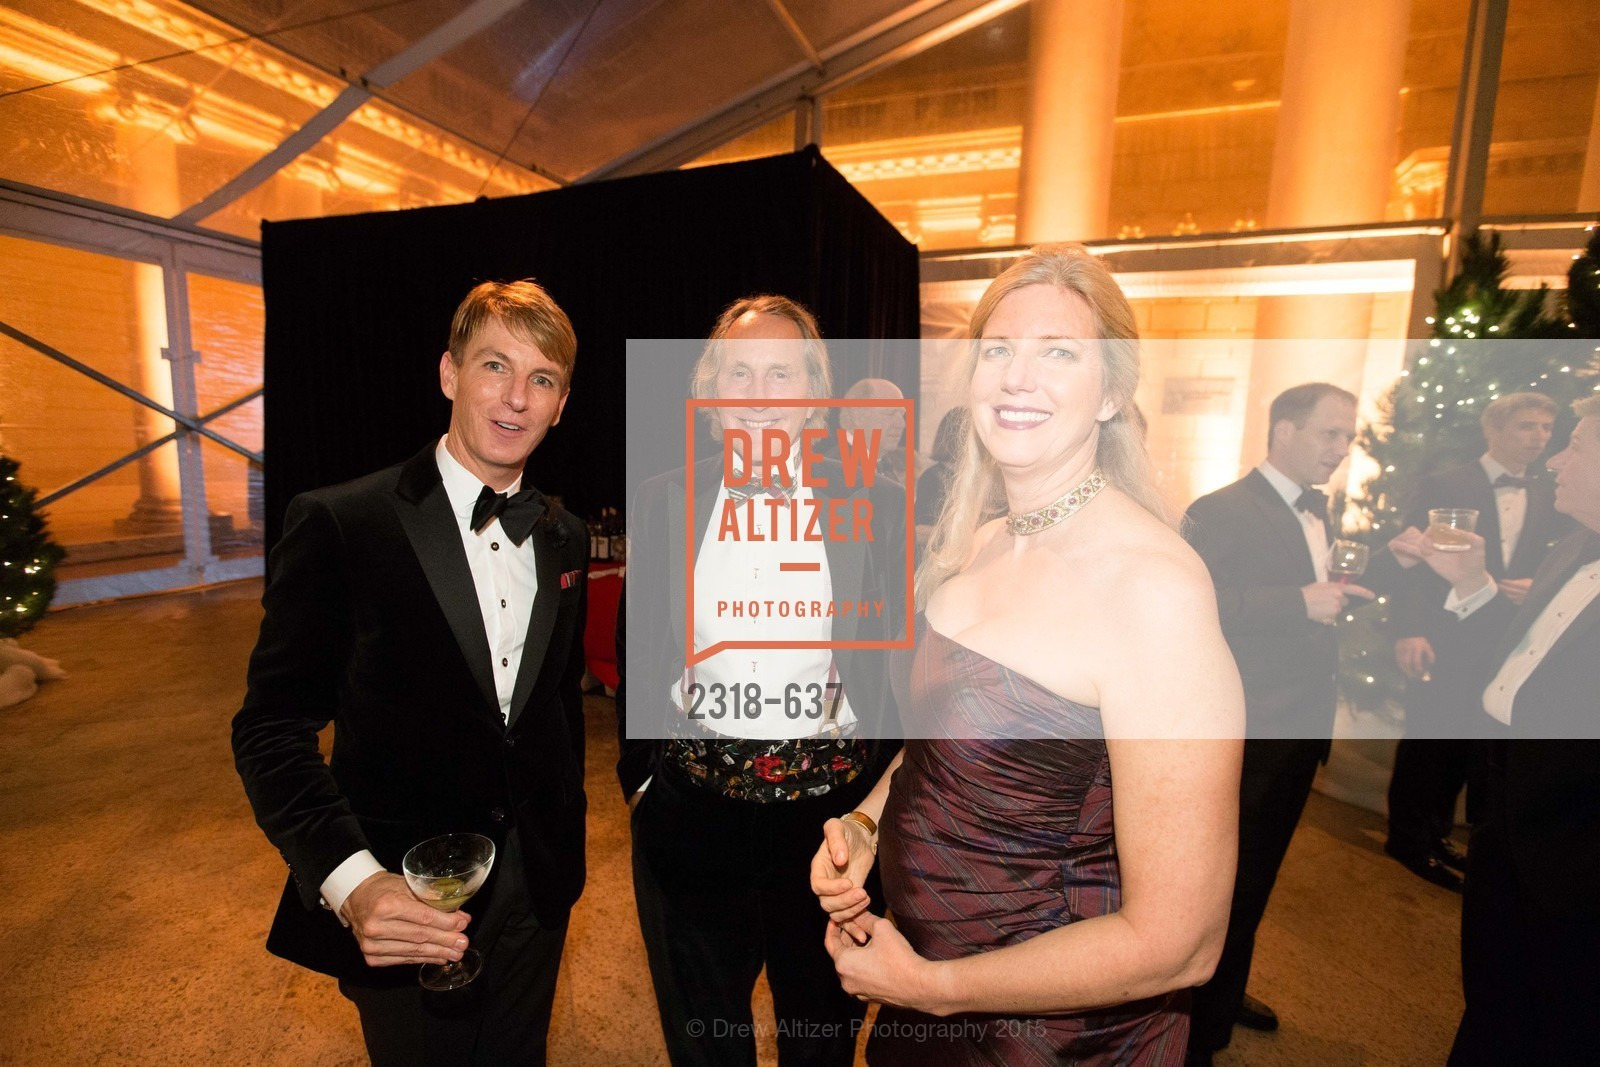 Jack Calhoun, Laney Thornton, Pasha Thornton, AN ELEGANT EVENING Presented by the Fine Arts Museums of San Francisco, Legion of Honor, Court of Honor. 100 34th Ave, December 8th, 2015,Drew Altizer, Drew Altizer Photography, full-service agency, private events, San Francisco photographer, photographer california